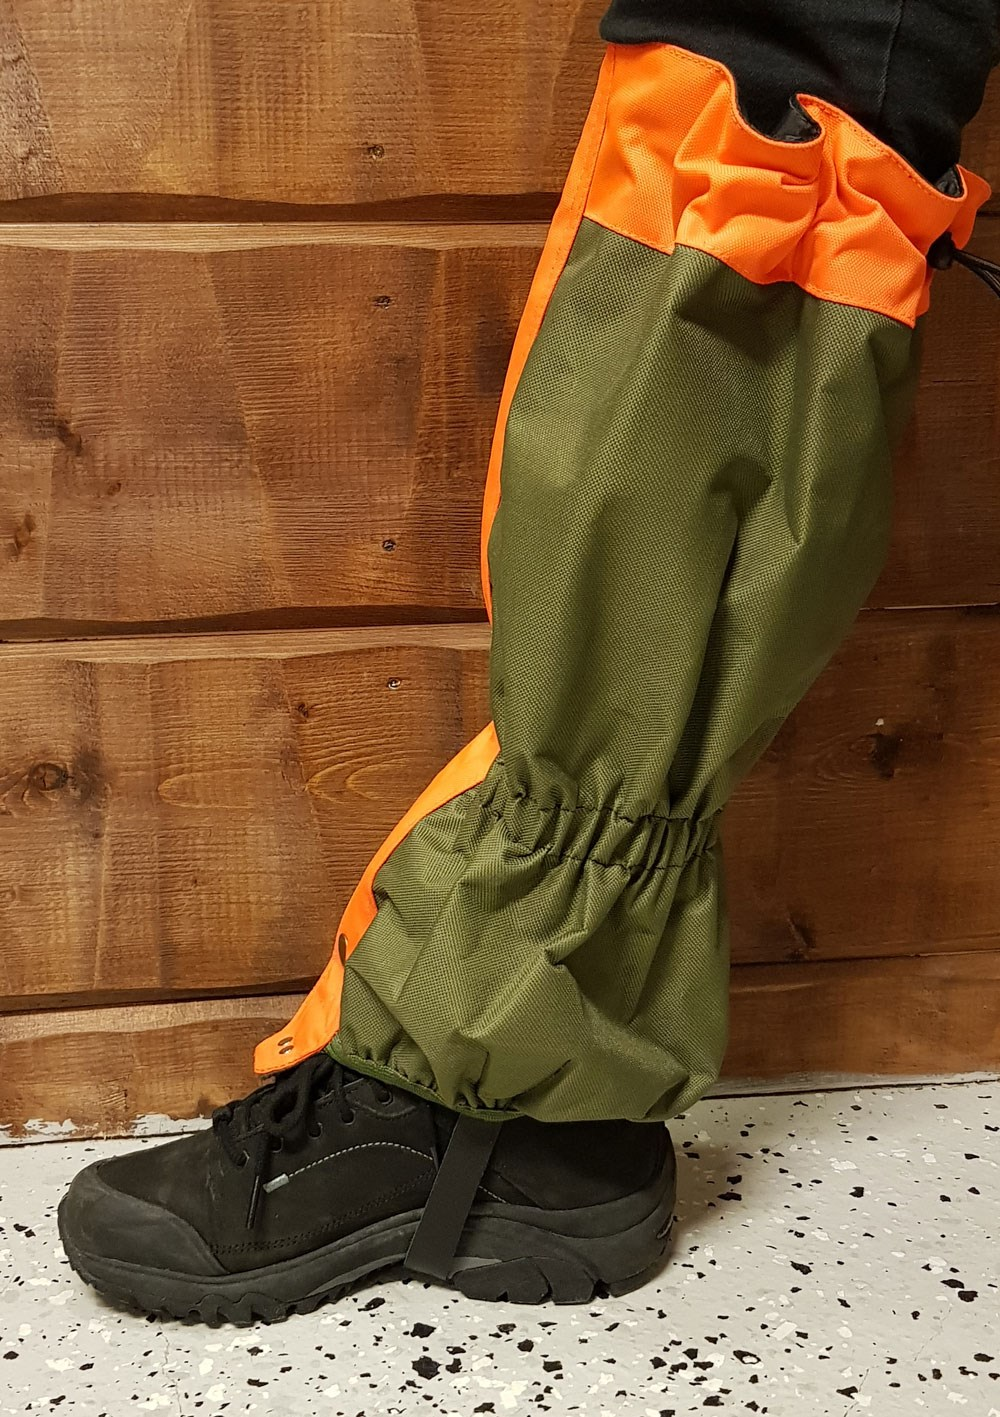 Gaiters Grön/orange